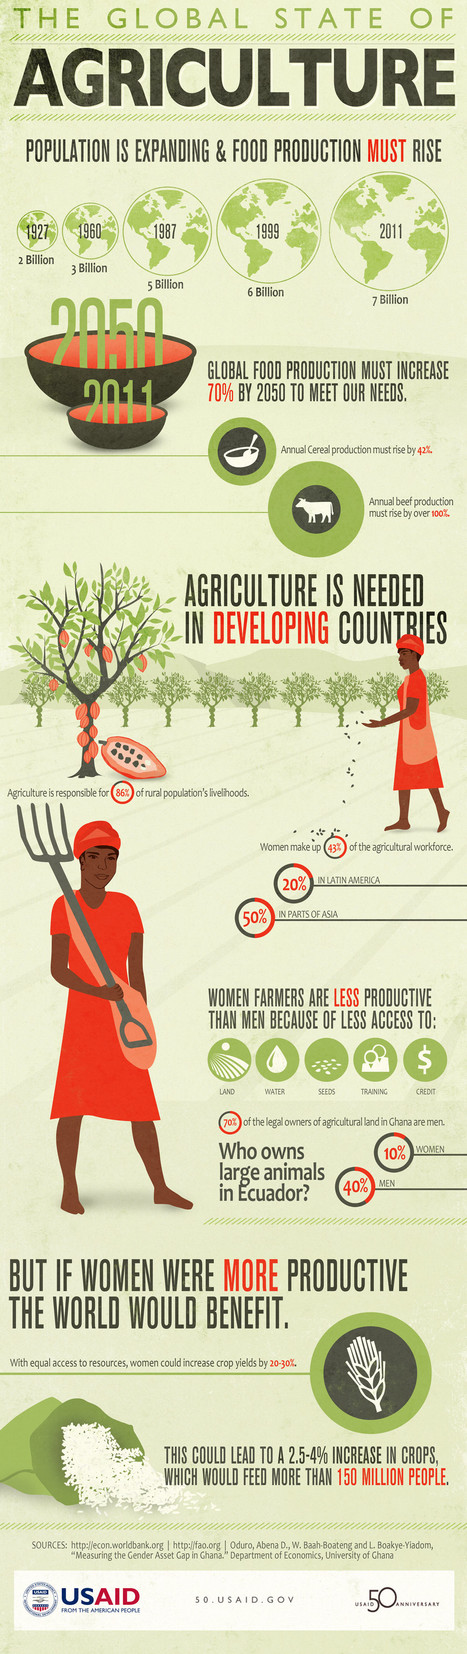 Global State of Agriculture | Human Geography | Scoop.it